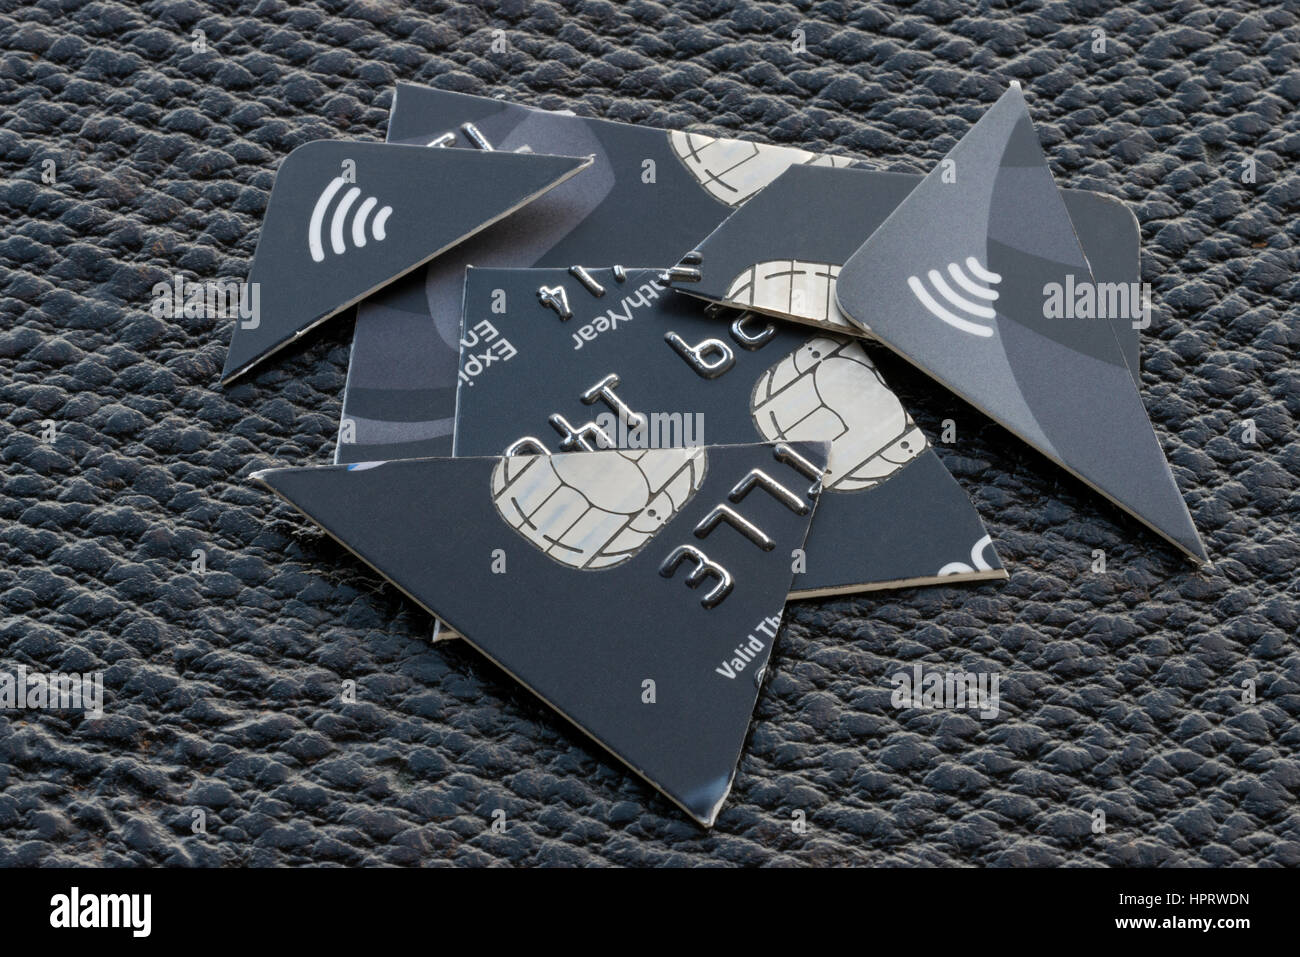 At expiry of bank cards, it is advised to cut them into pieces to destroy them. Cut up credit card through embedded - Stock Image